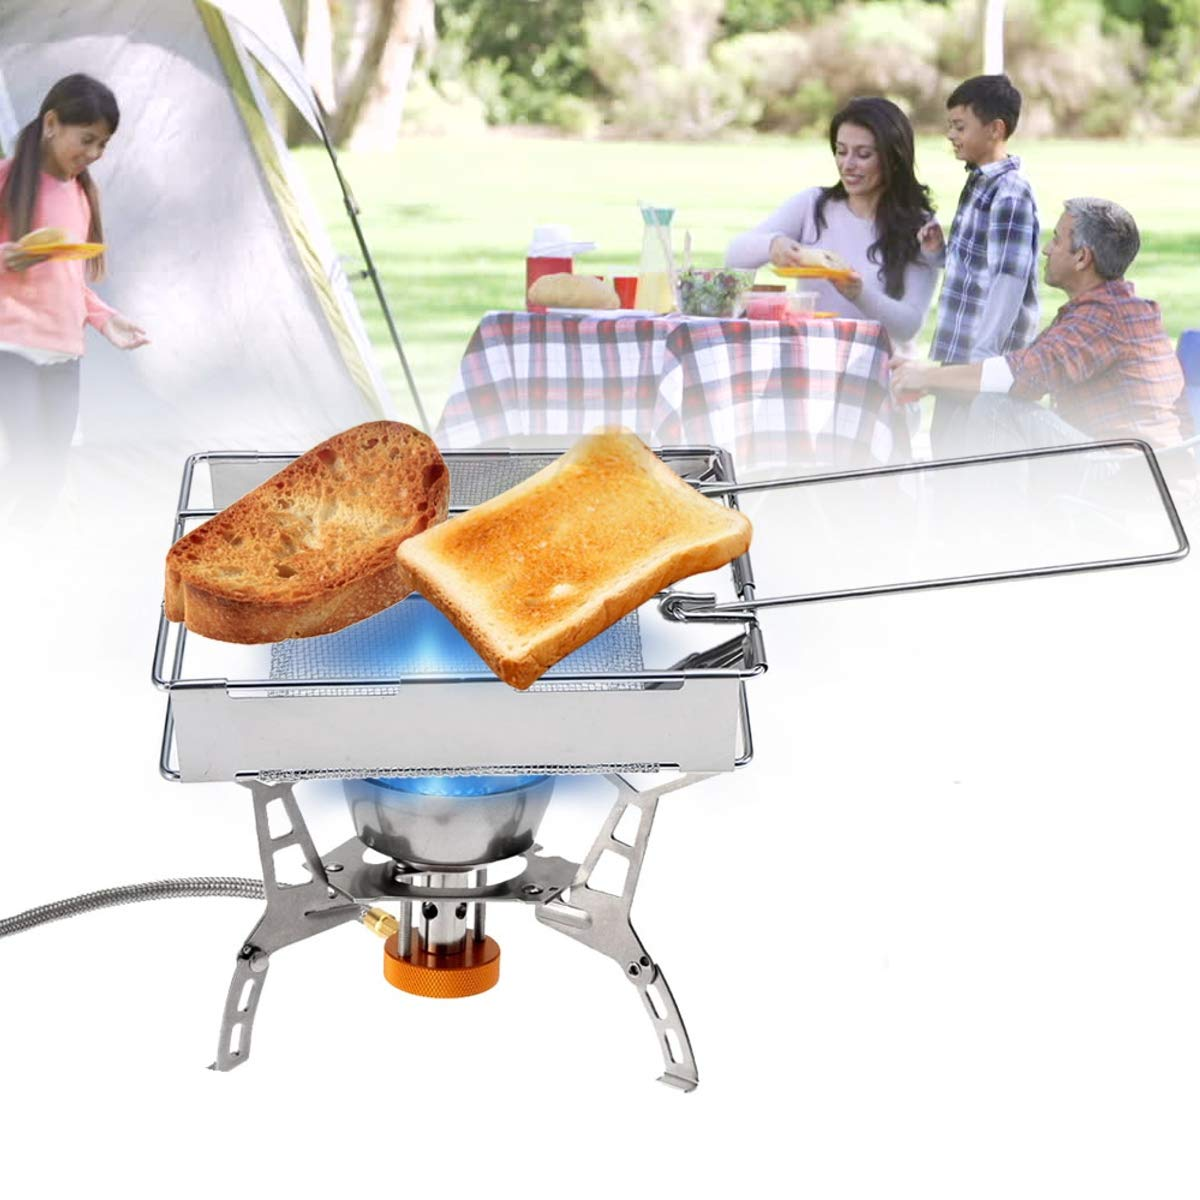 Portable Stove Toaster SENREAL Foldable BBQ Tray Rack Steel Cookware for Bread Toast